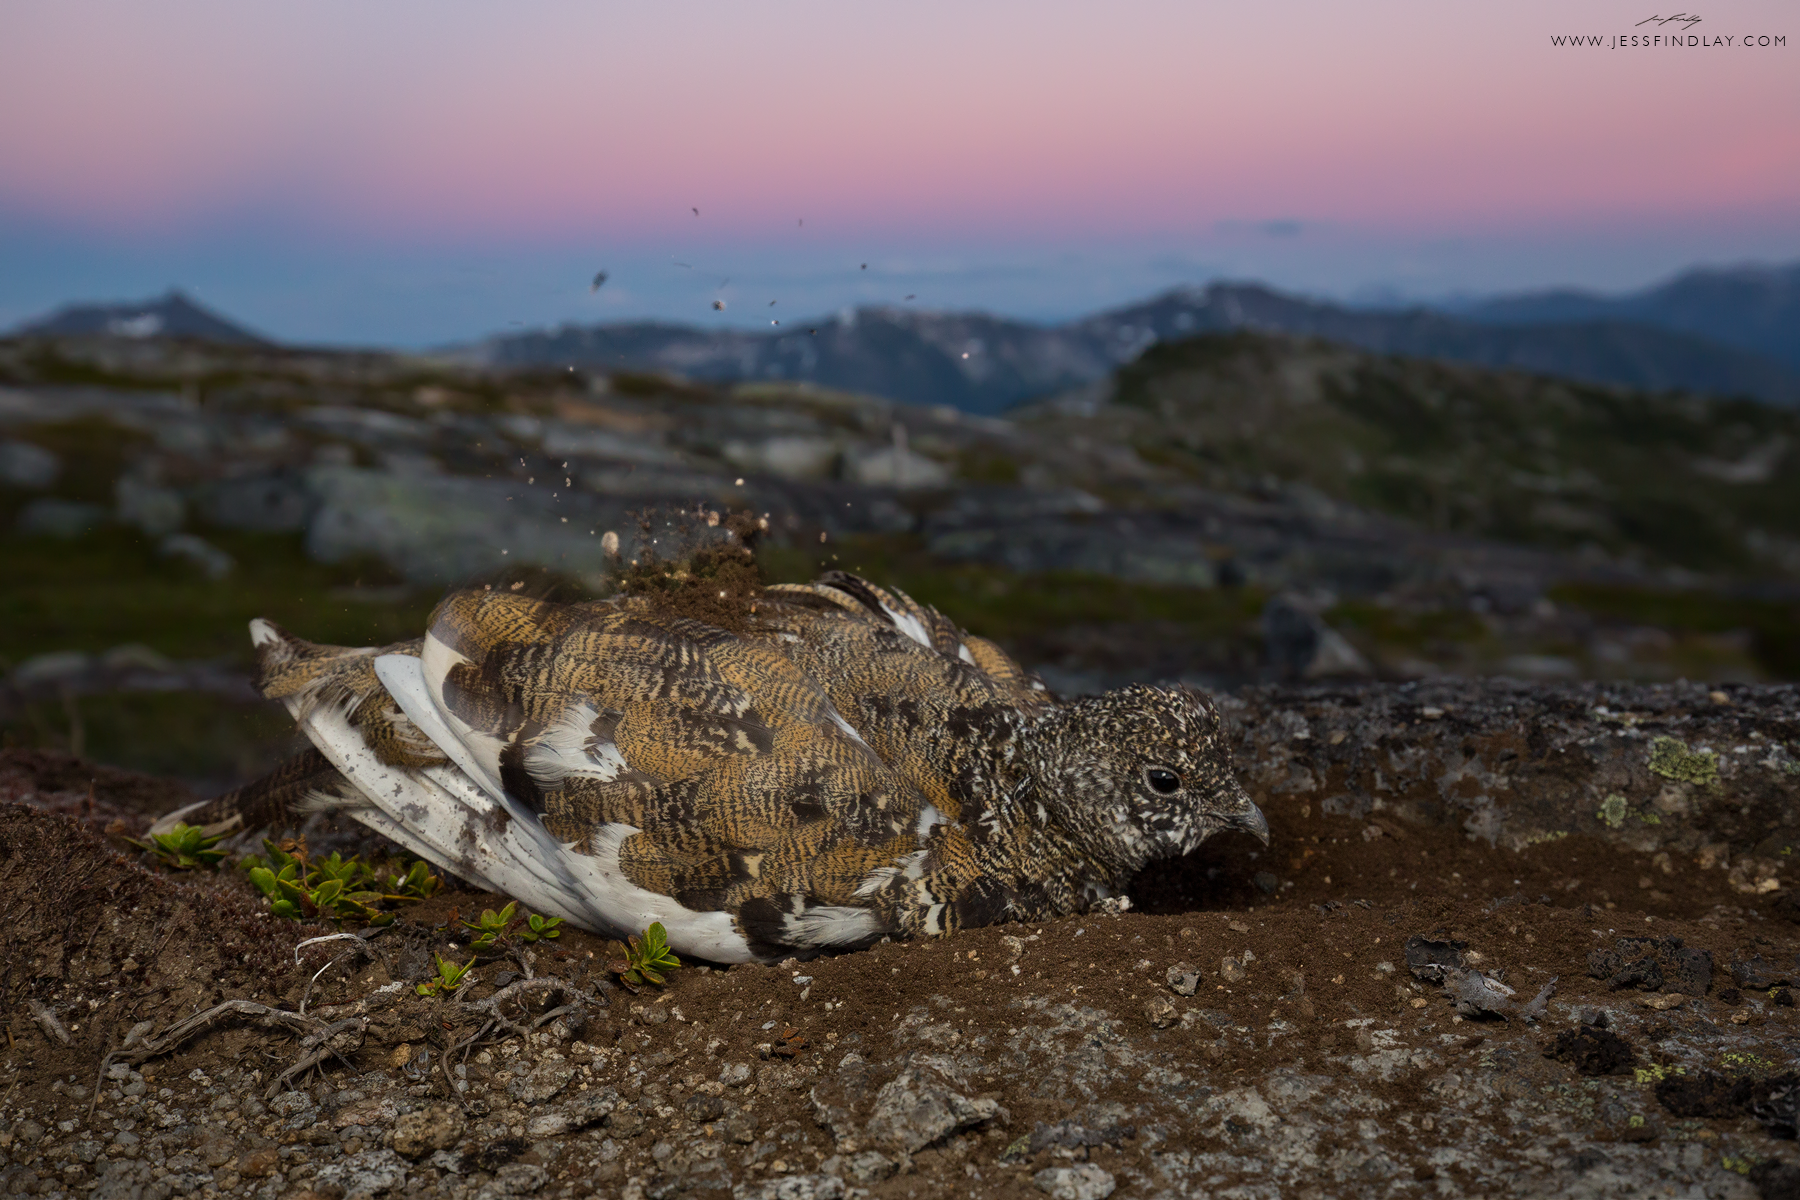 As day turns to night atop a remote peak in the Cascade Mountains of British Columbia, Canada, a female White-tailed Ptarmigan dust bathes.